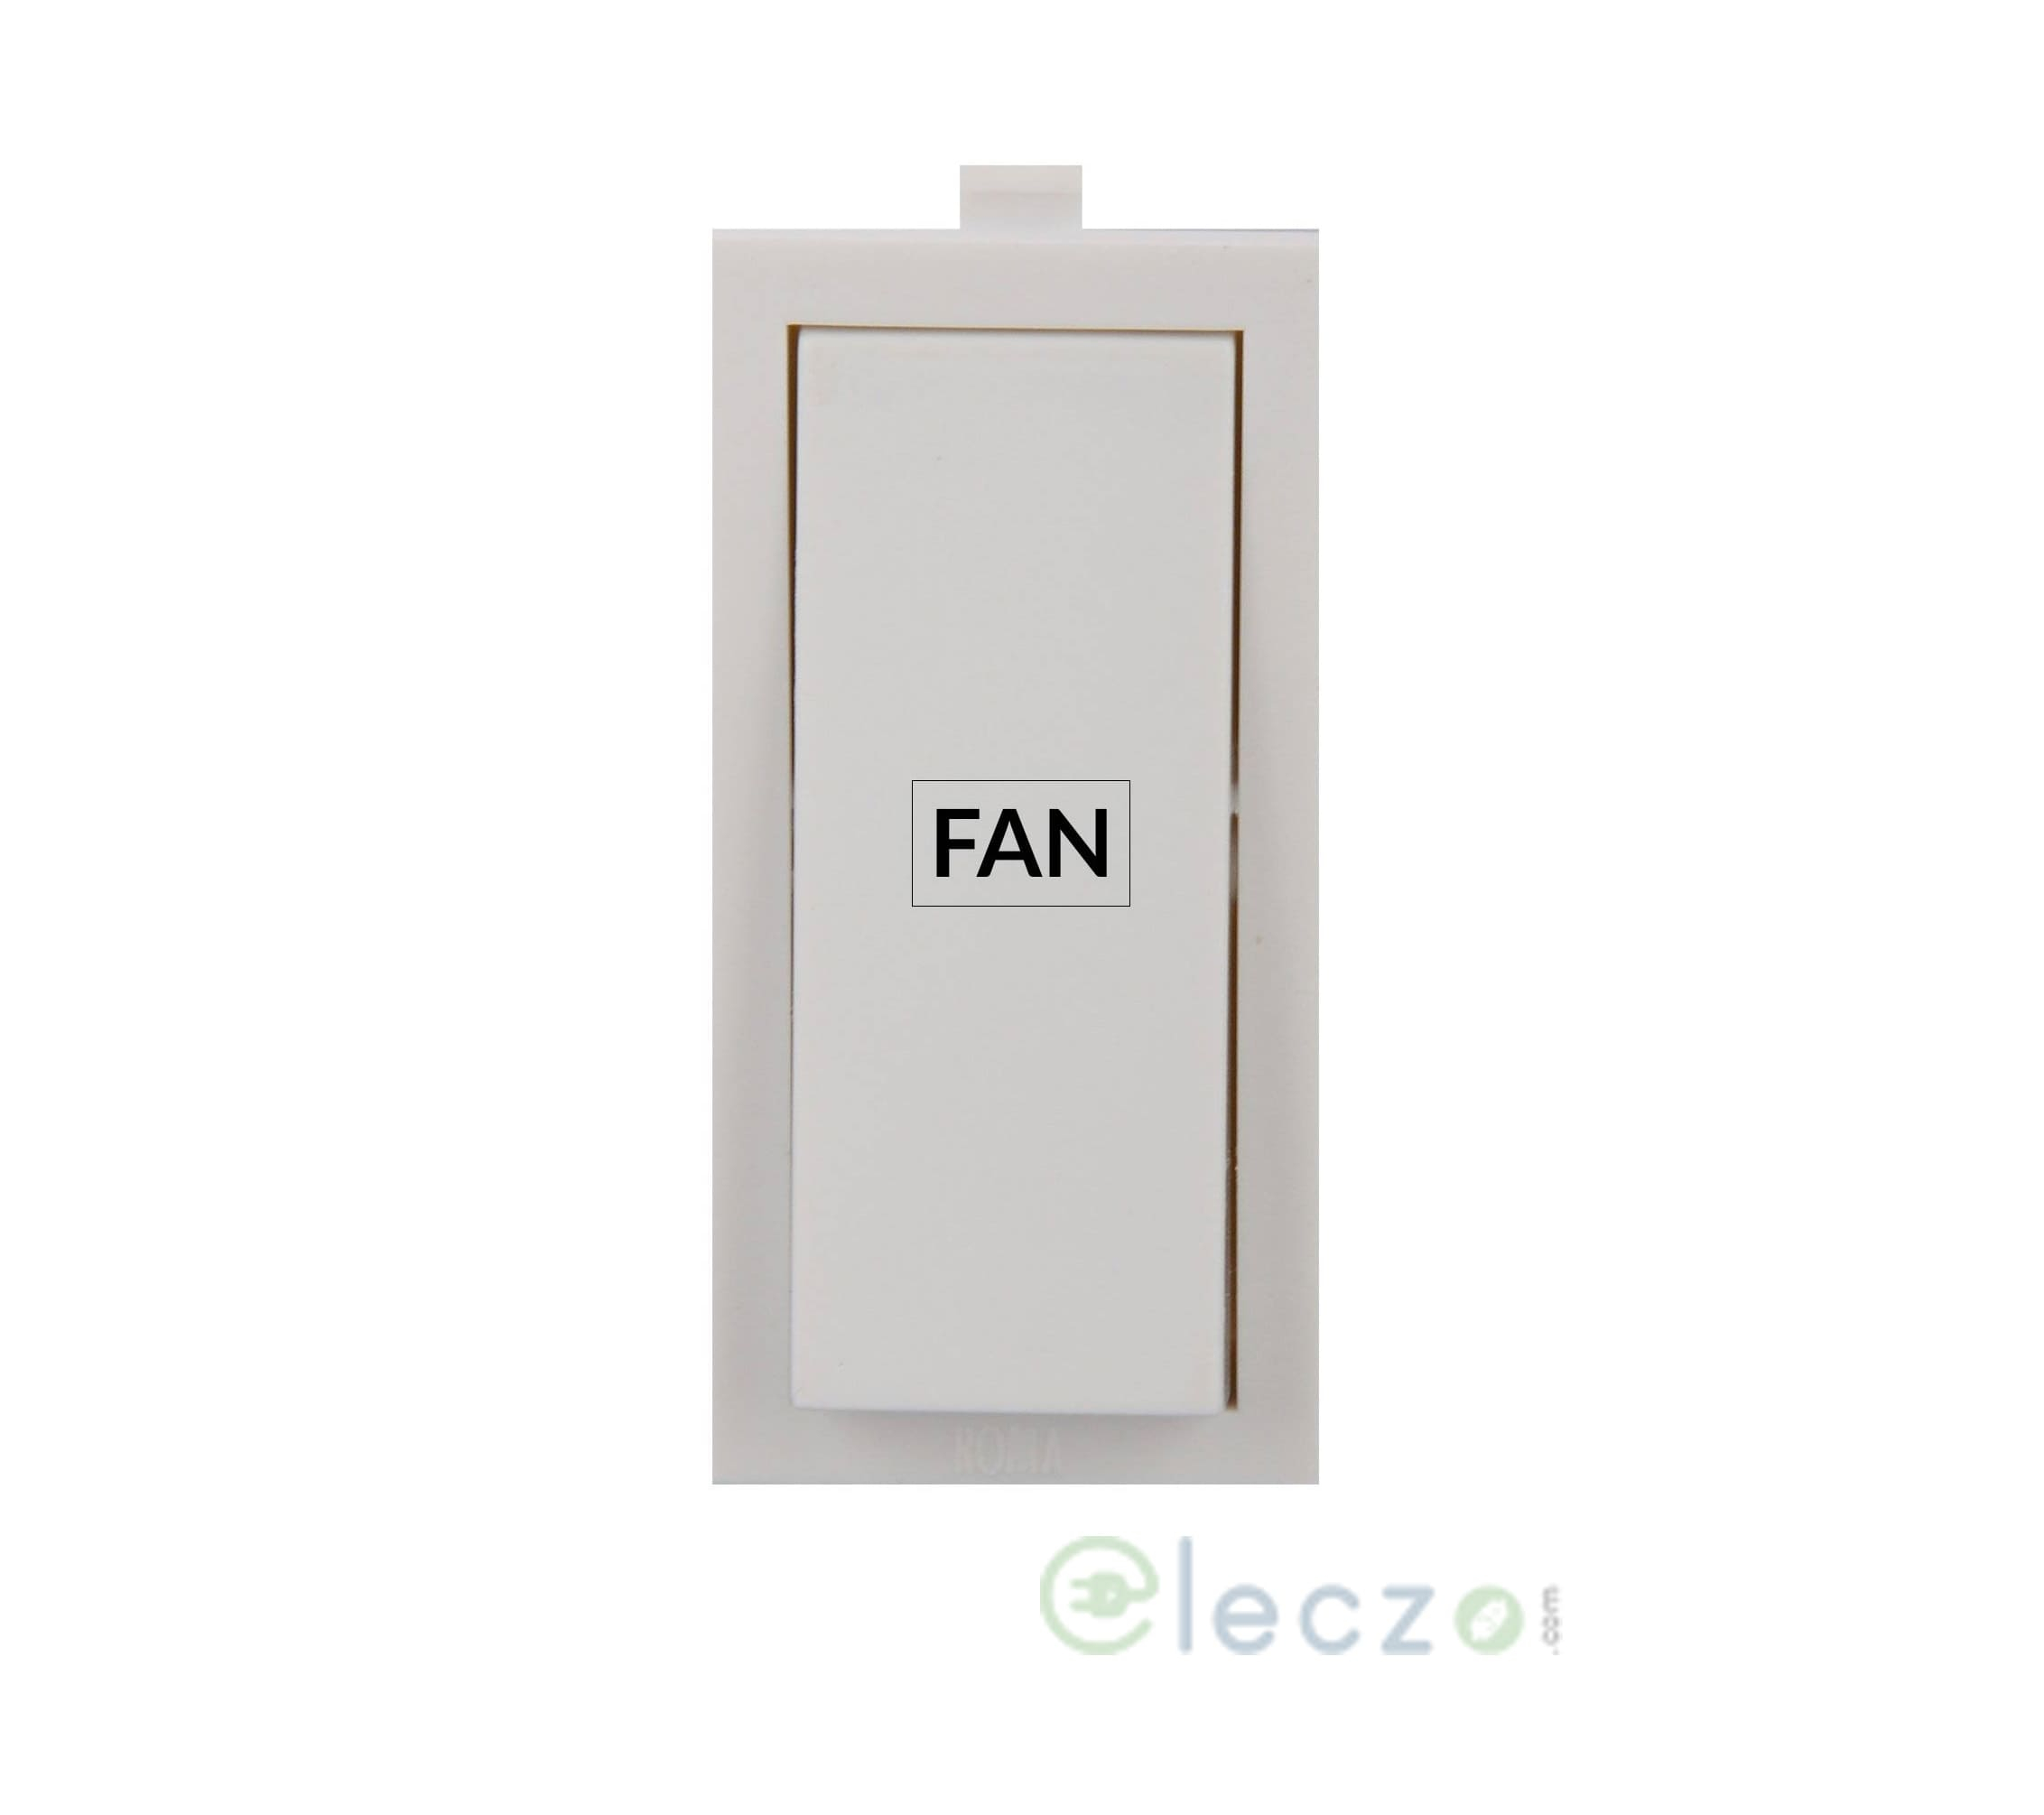 Anchor Roma Classic White Switch With Fan Mark 10 A, 1 Module, 1 Way